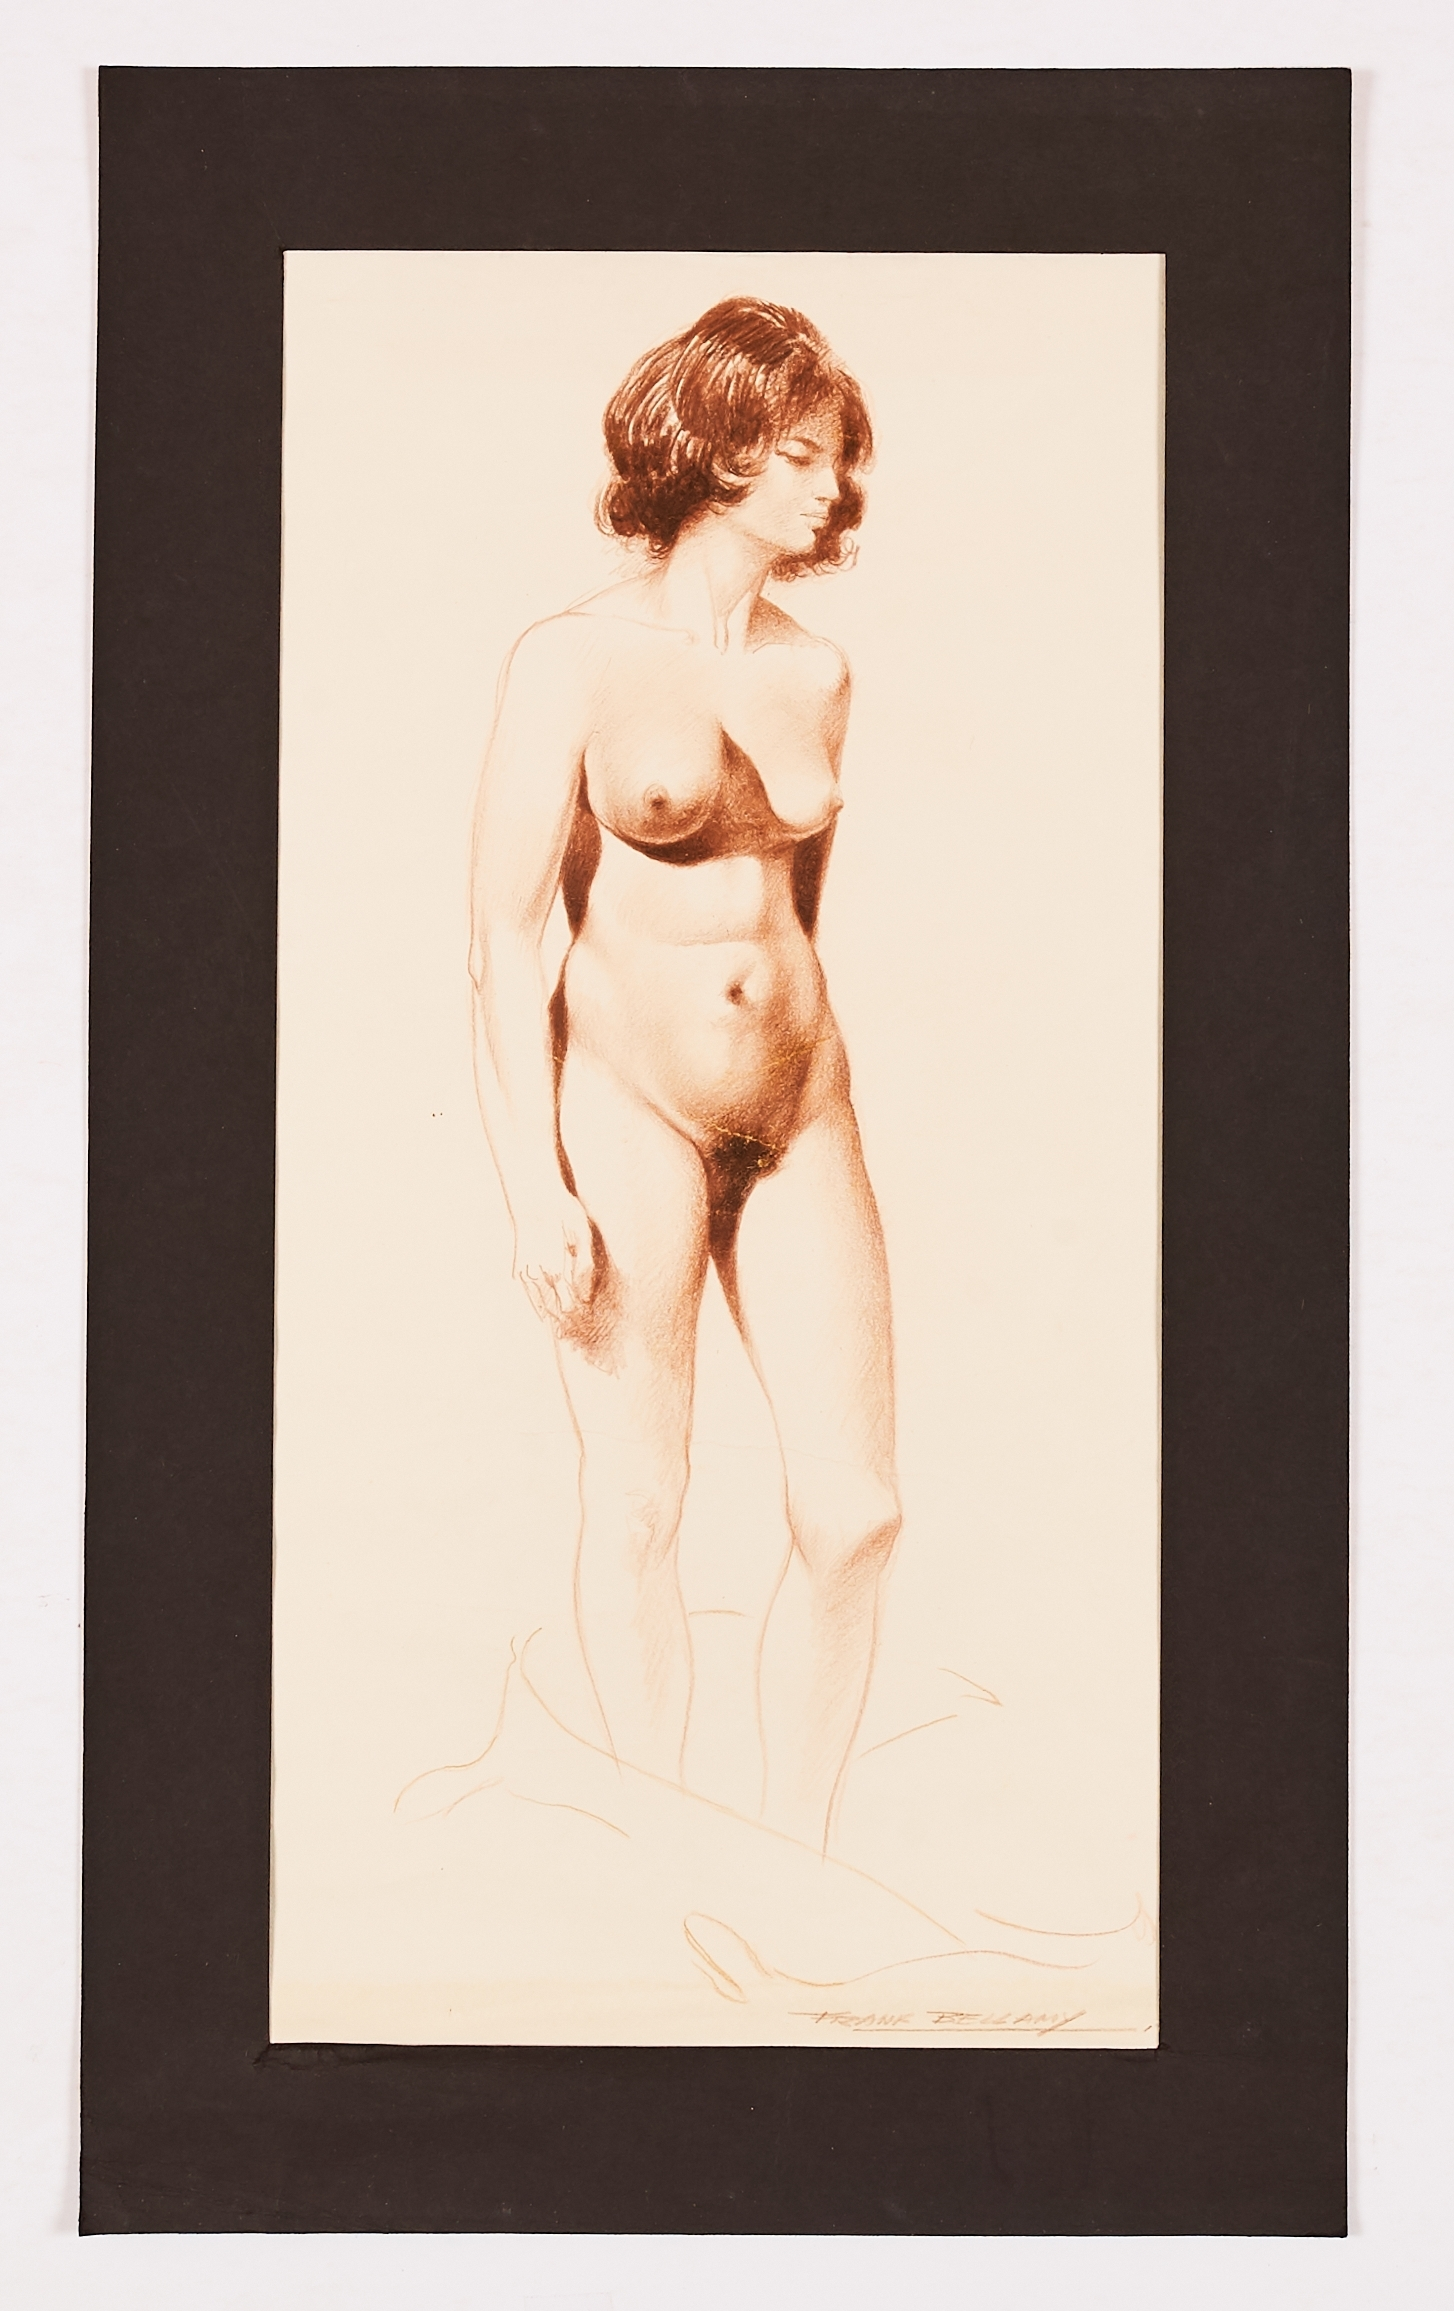 Lot 68 - Angela Mansi nude study drawn and signed by Frank Bellamy (mid 60s). During this time Frank